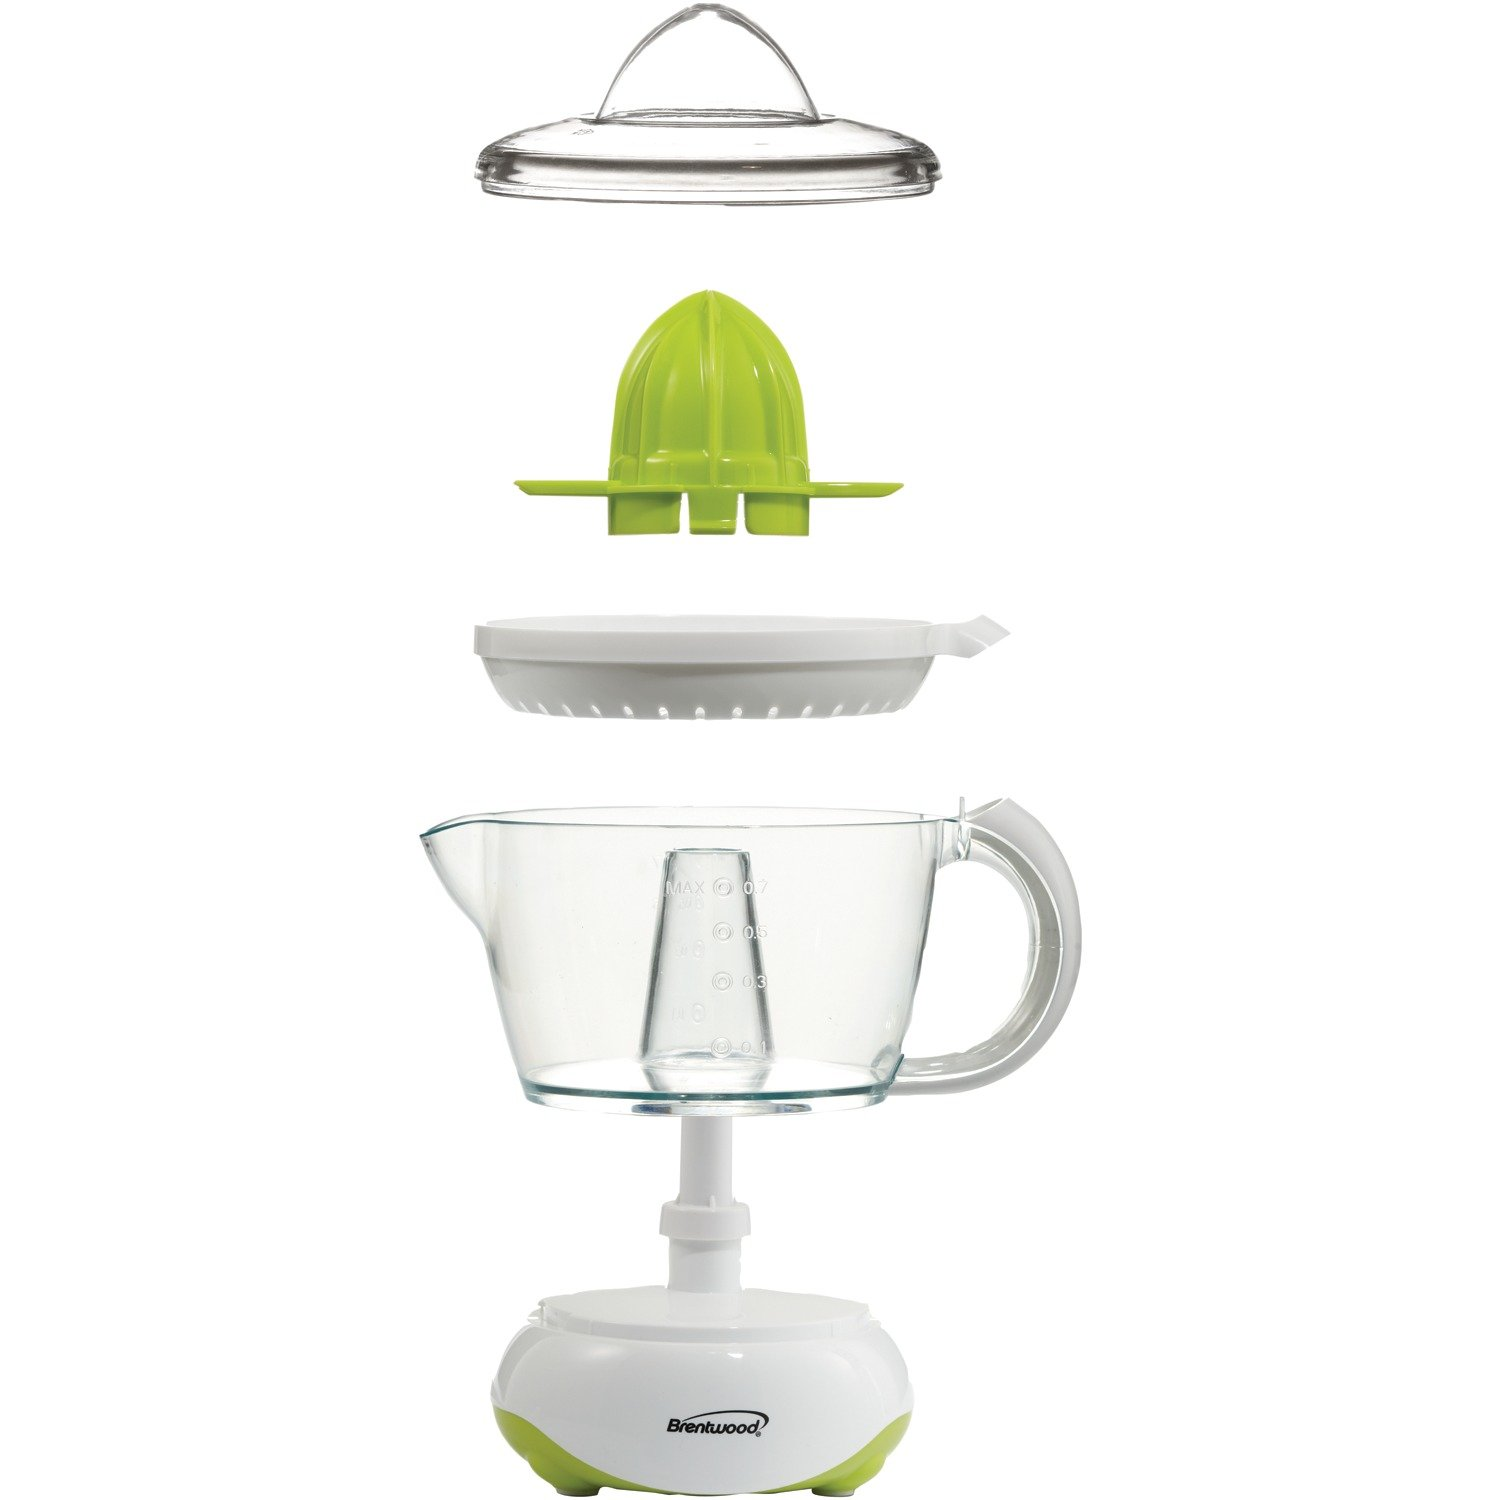 Brentwood  J-15  24oz  Electric  Citrus  Juicer,  White by Brentwood (Image #7)